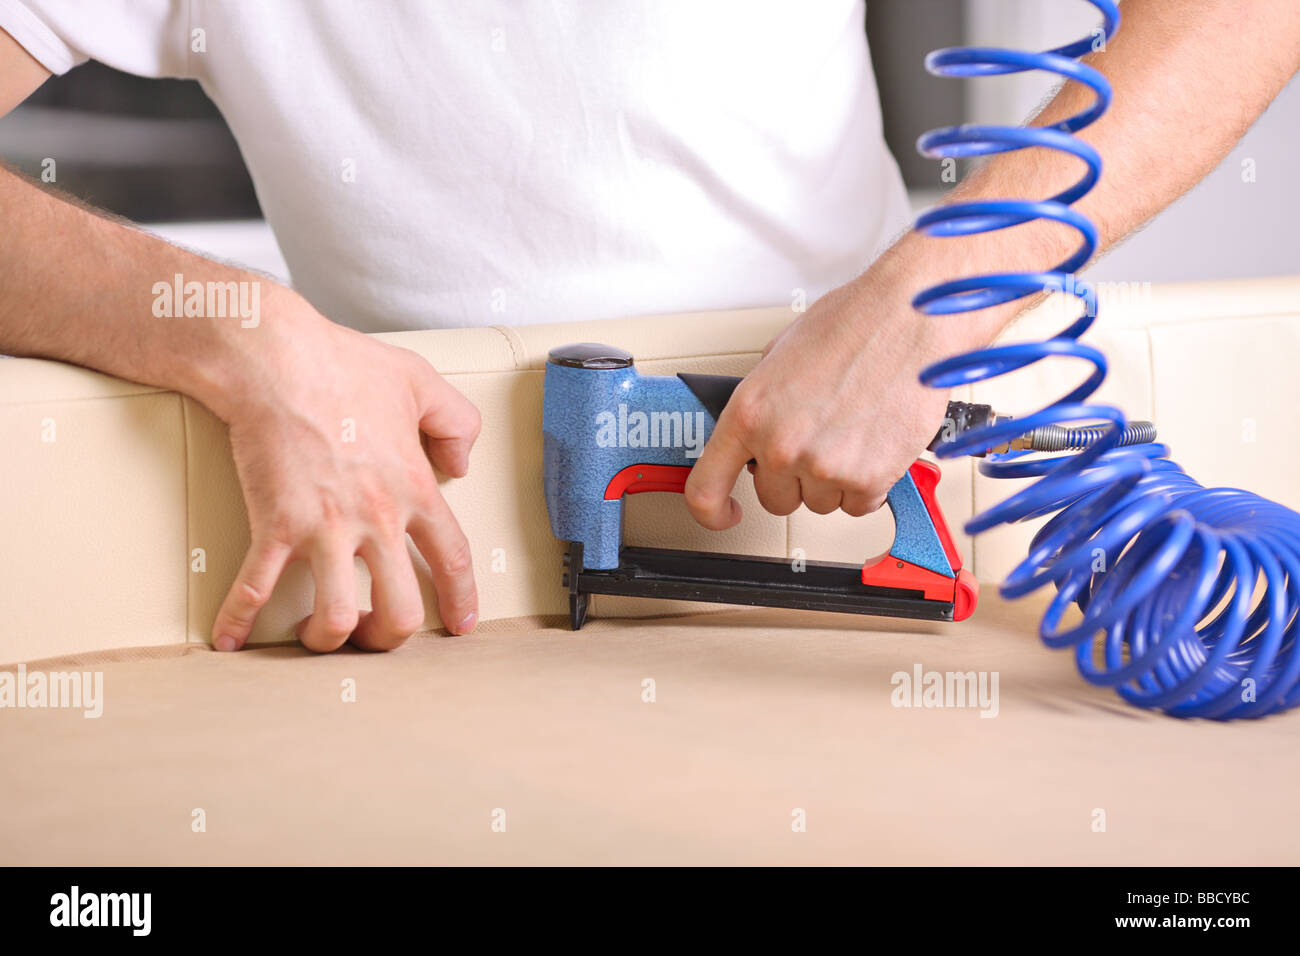 Man using a power tool in a factory - Stock Image